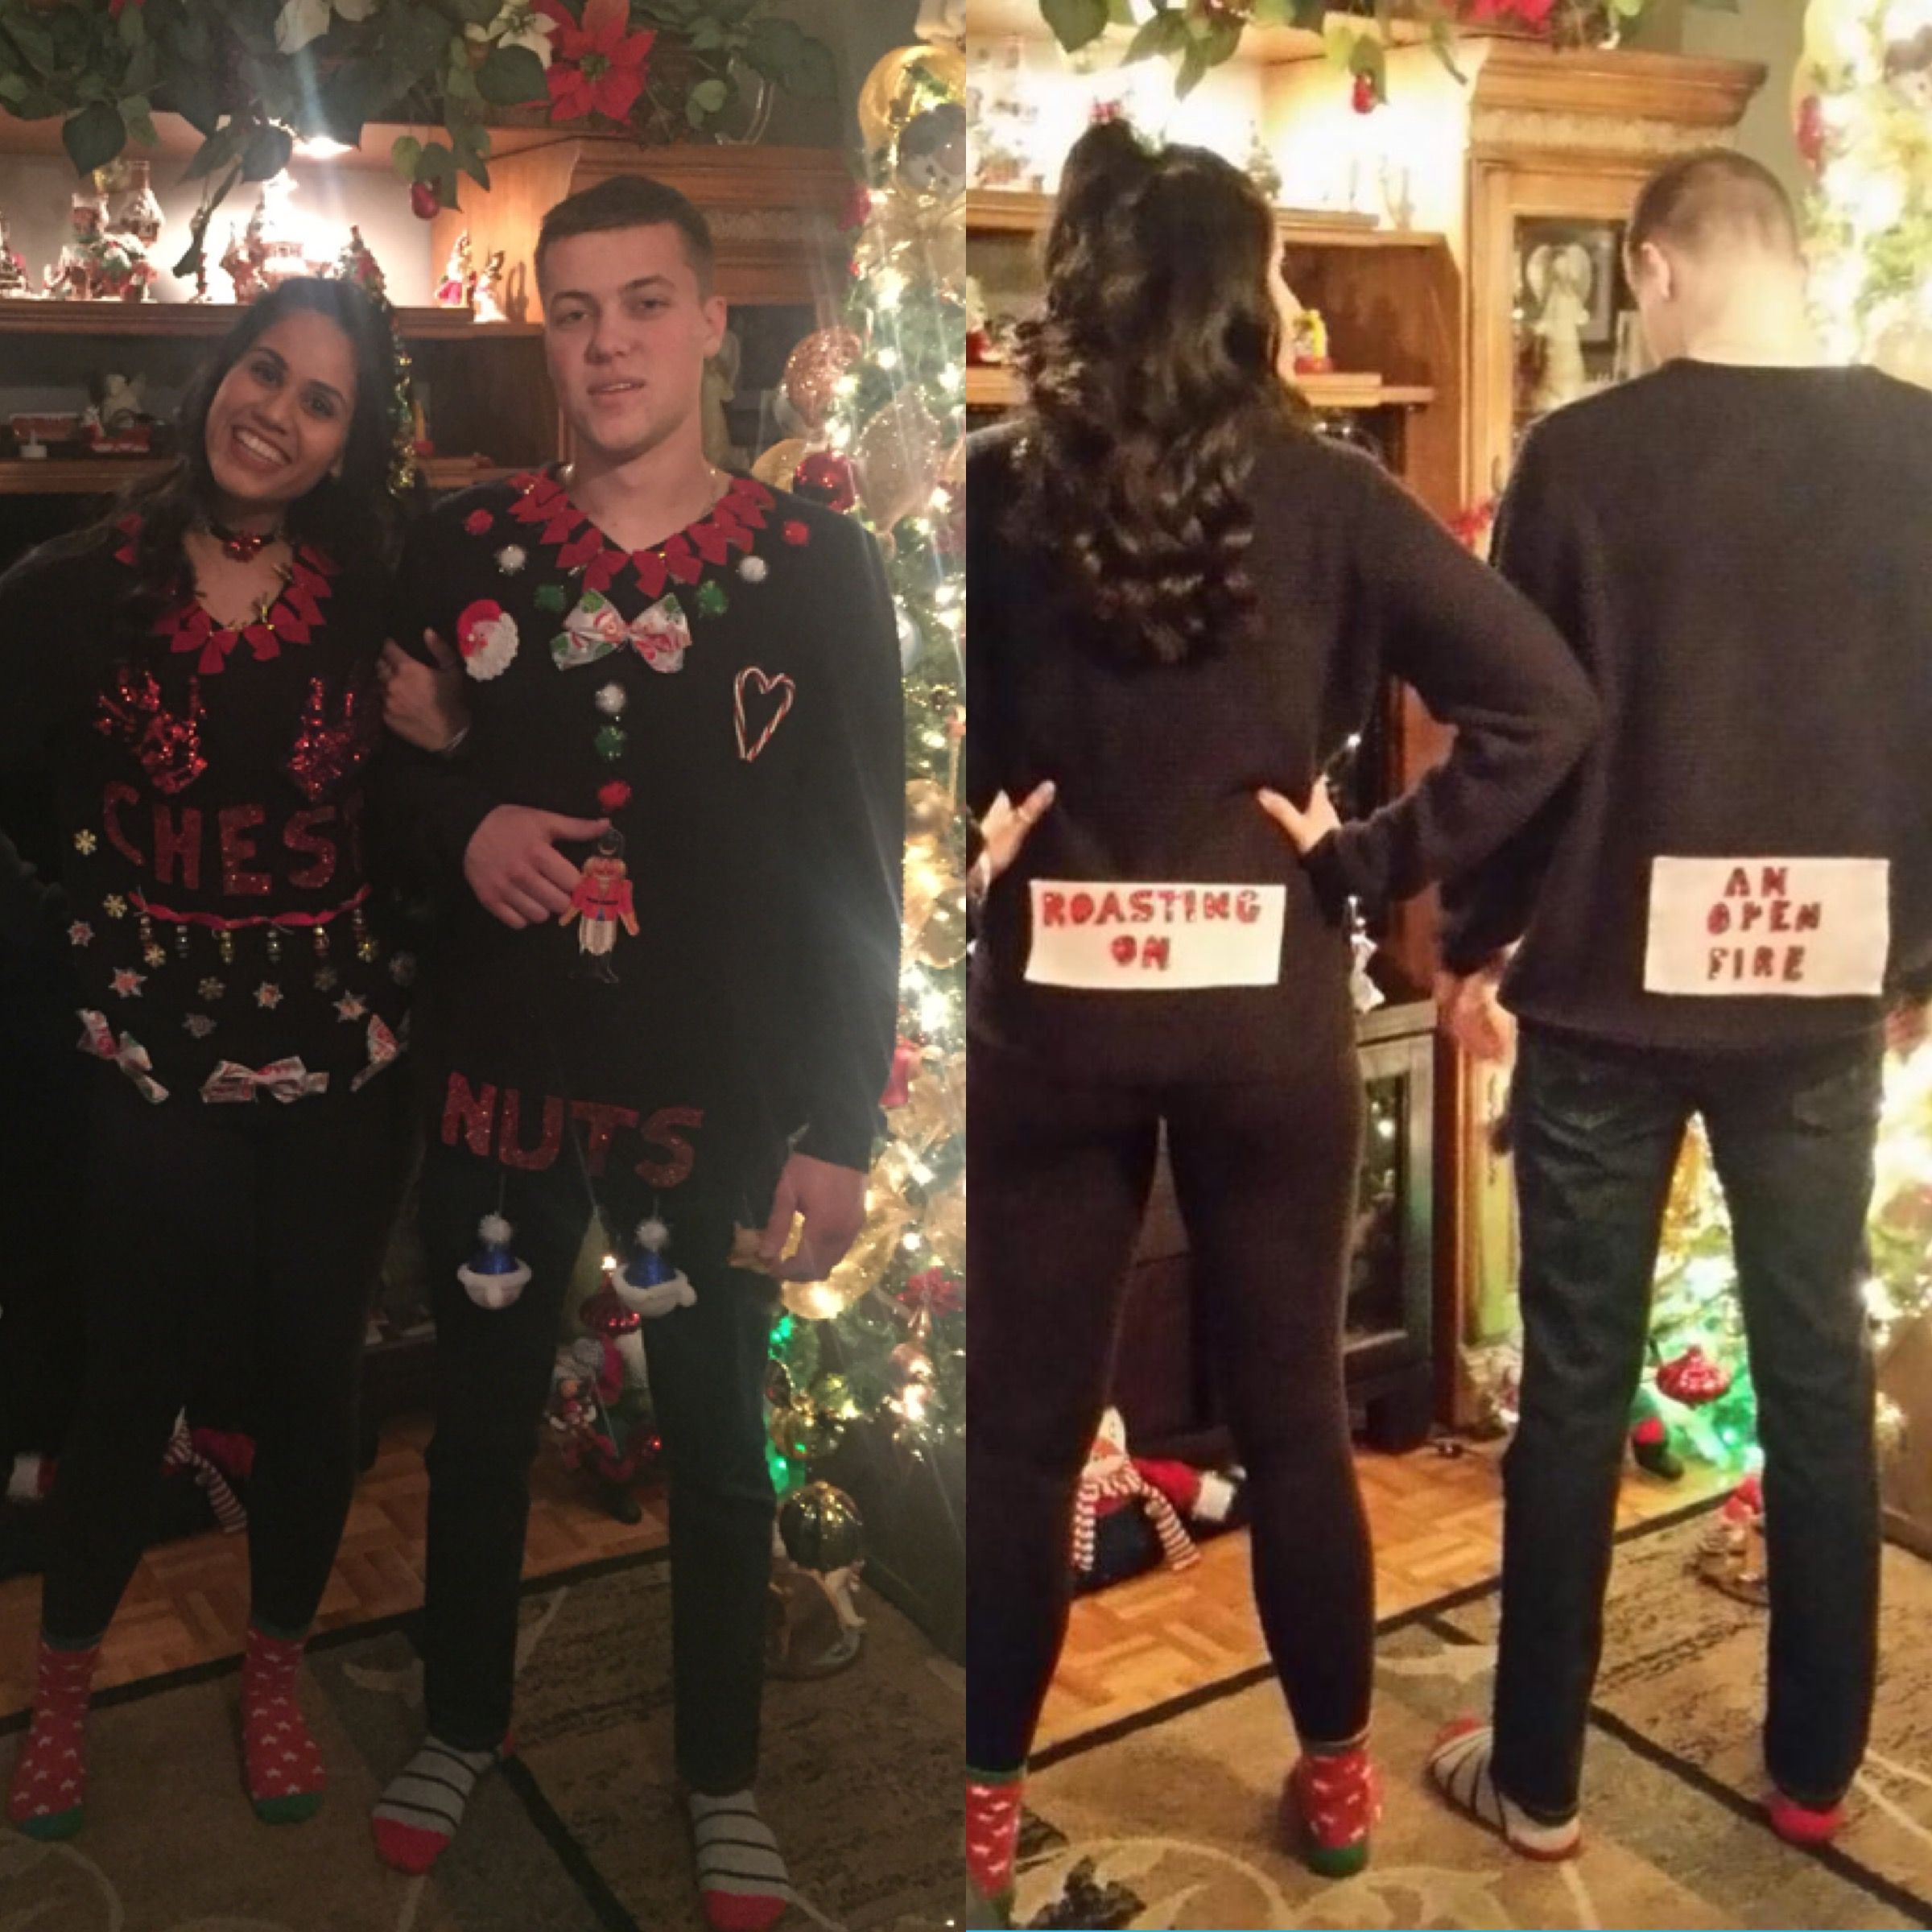 Ugly Christmas Sweater Party Adult Snow Man Woman Couple Holiday